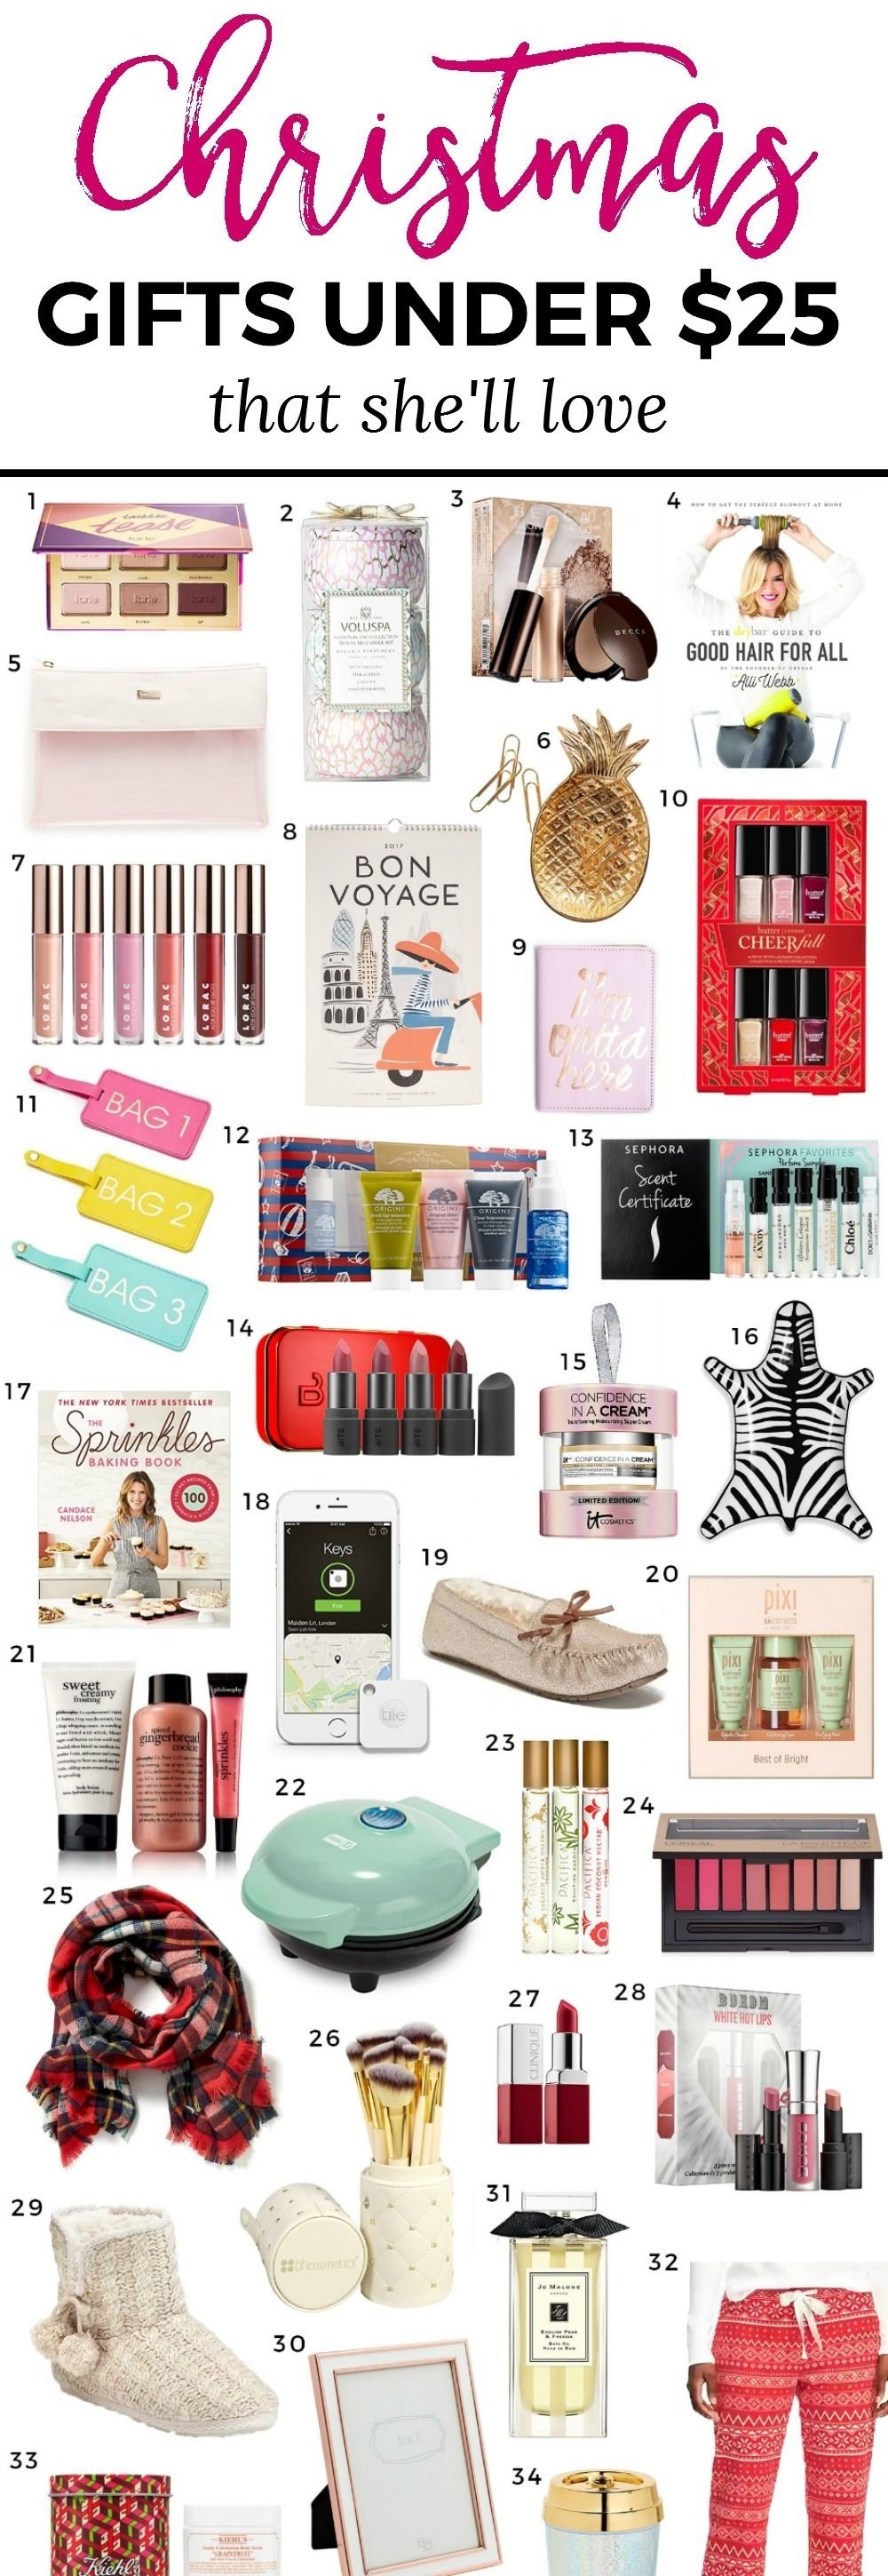 Great Christmas Gift Ideas For Women Part - 18: 10 Unique Best Gift Ideas For Women The Best Christmas Gift Ideas For Women  Under 25